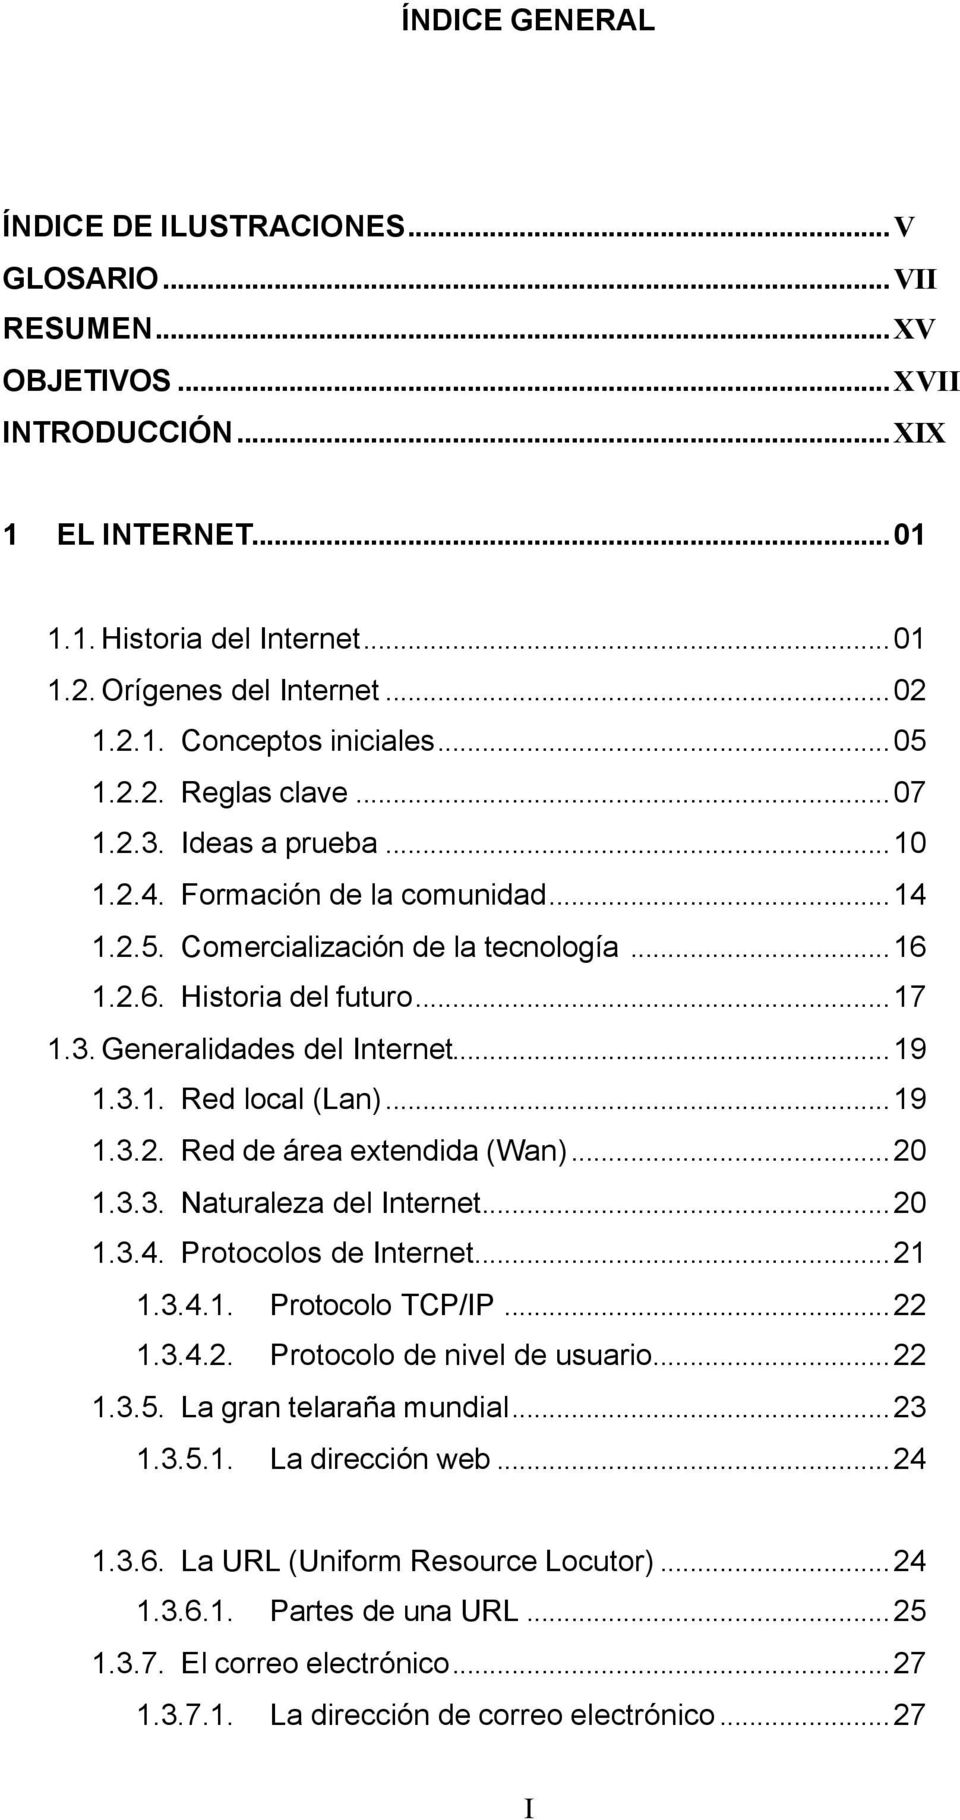 .. 17 1.3. Generalidades del Internet... 19 1.3.1. Red local (Lan)... 19 1.3.2. Red de área extendida (Wan)... 20 1.3.3. Naturaleza del Internet... 20 1.3.4. Protocolos de Internet... 21 1.3.4.1. Protocolo TCP/IP.